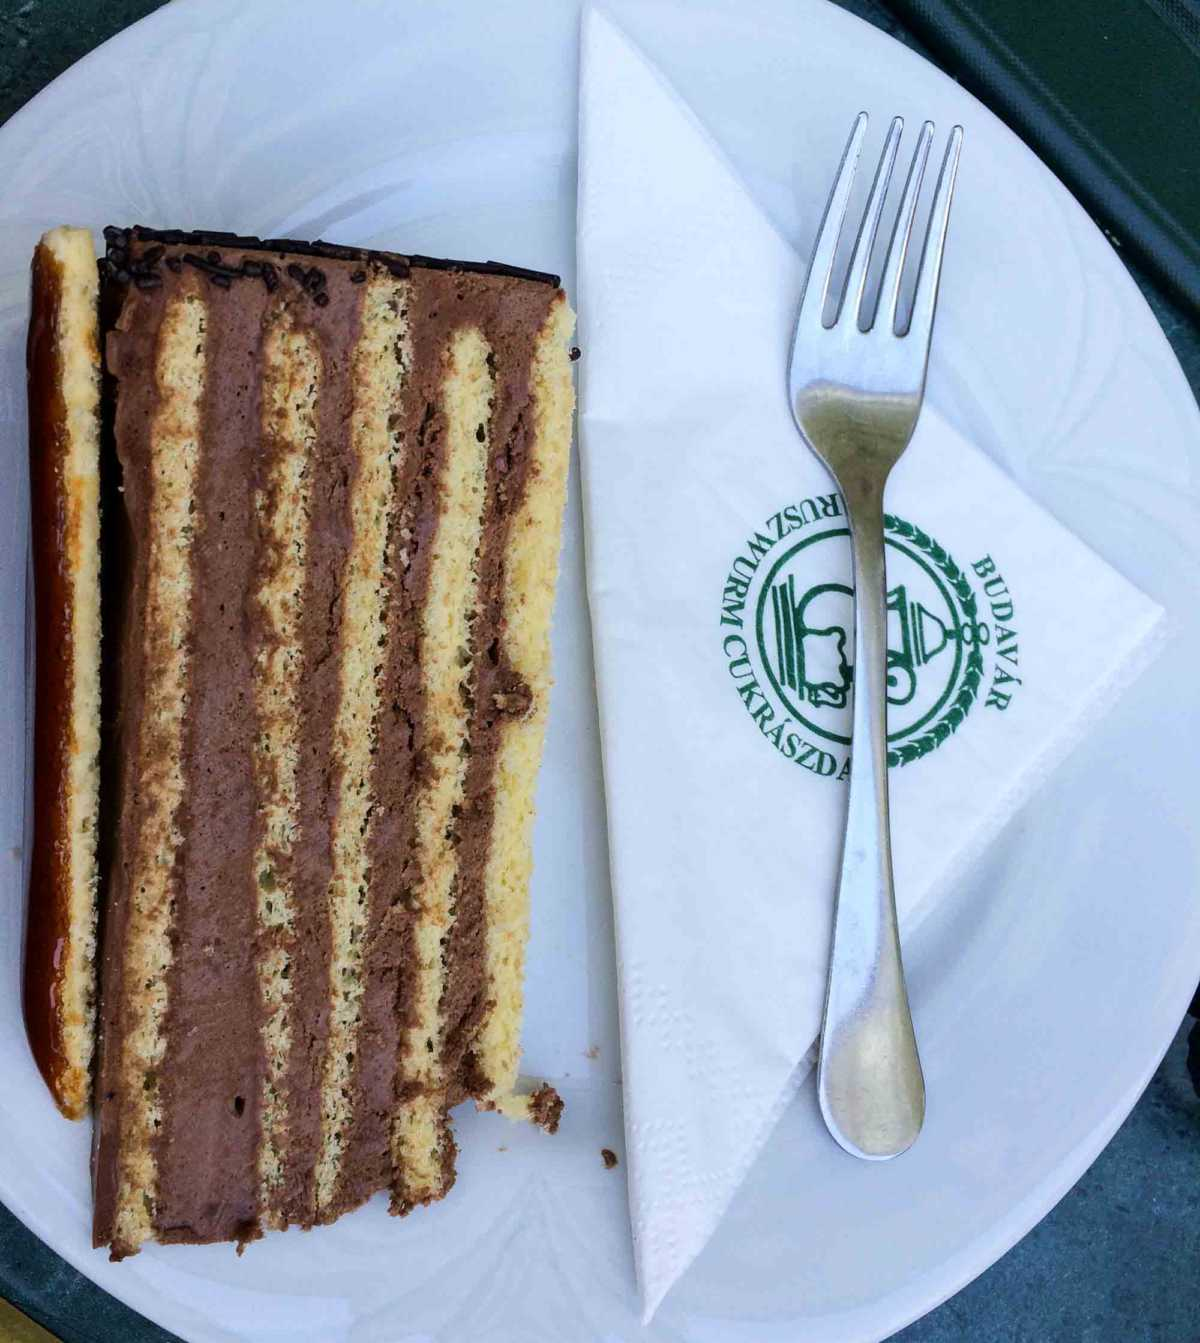 The classic Dobos Cake from Ruszurm Cafe